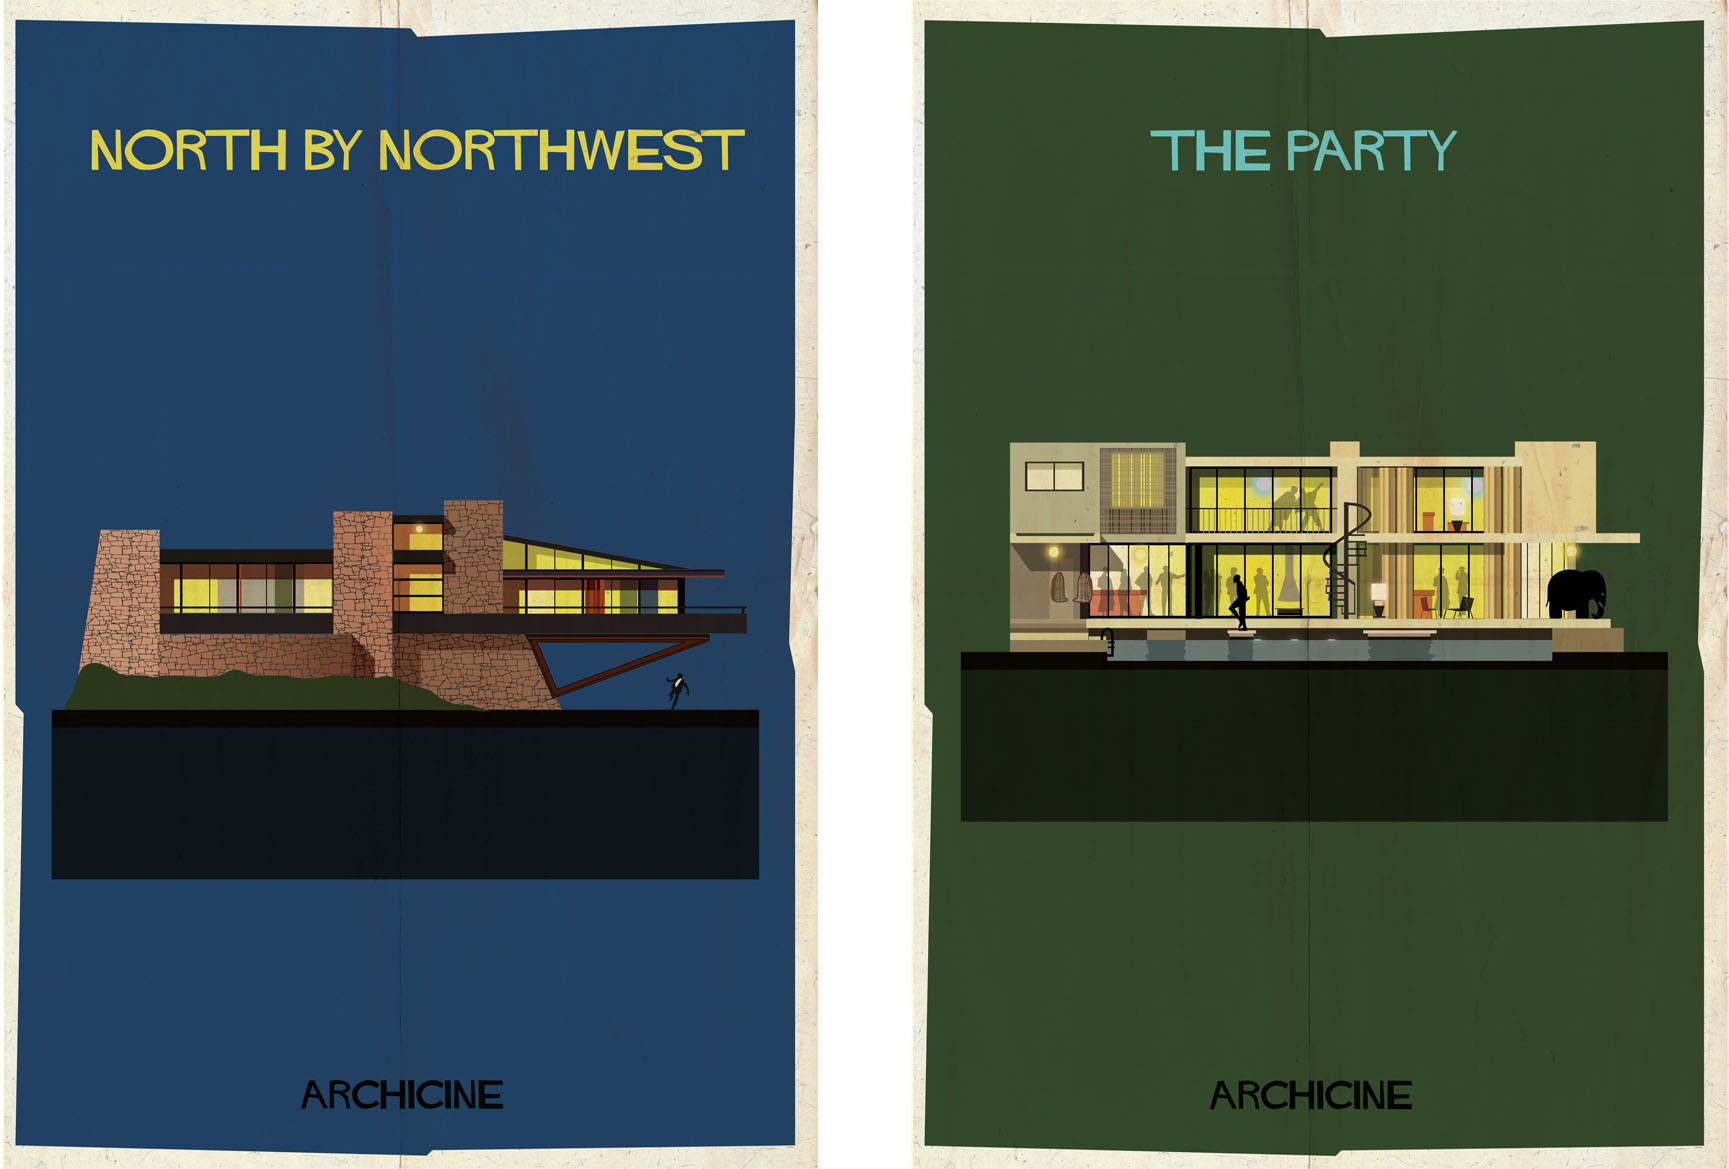 North by northwest & The party by Federico Babina